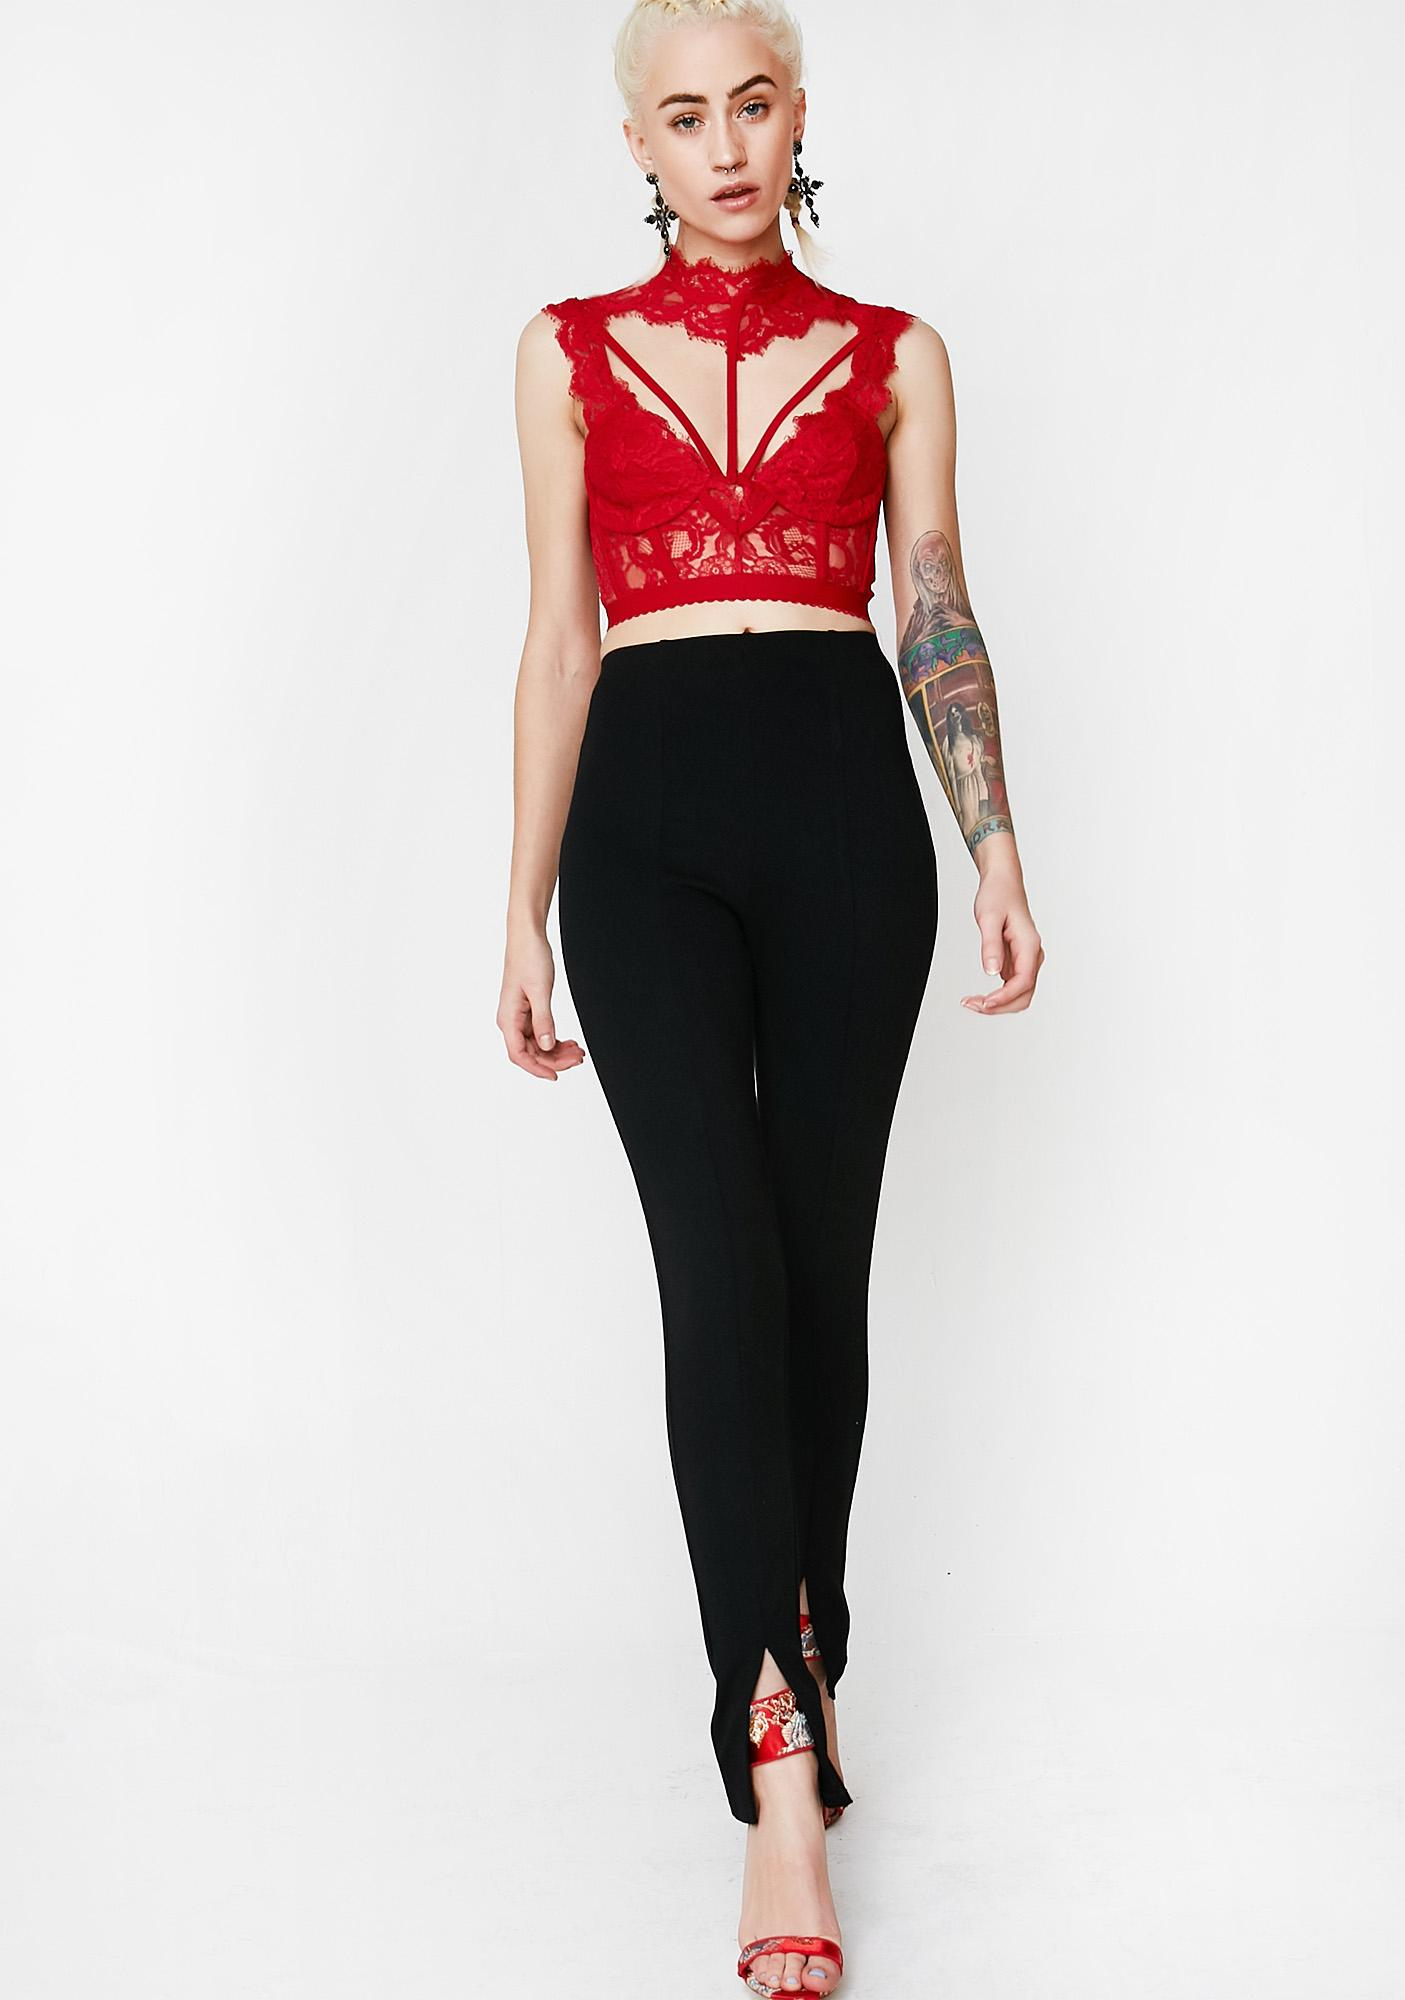 Flame Stolen Innocence Caged Top